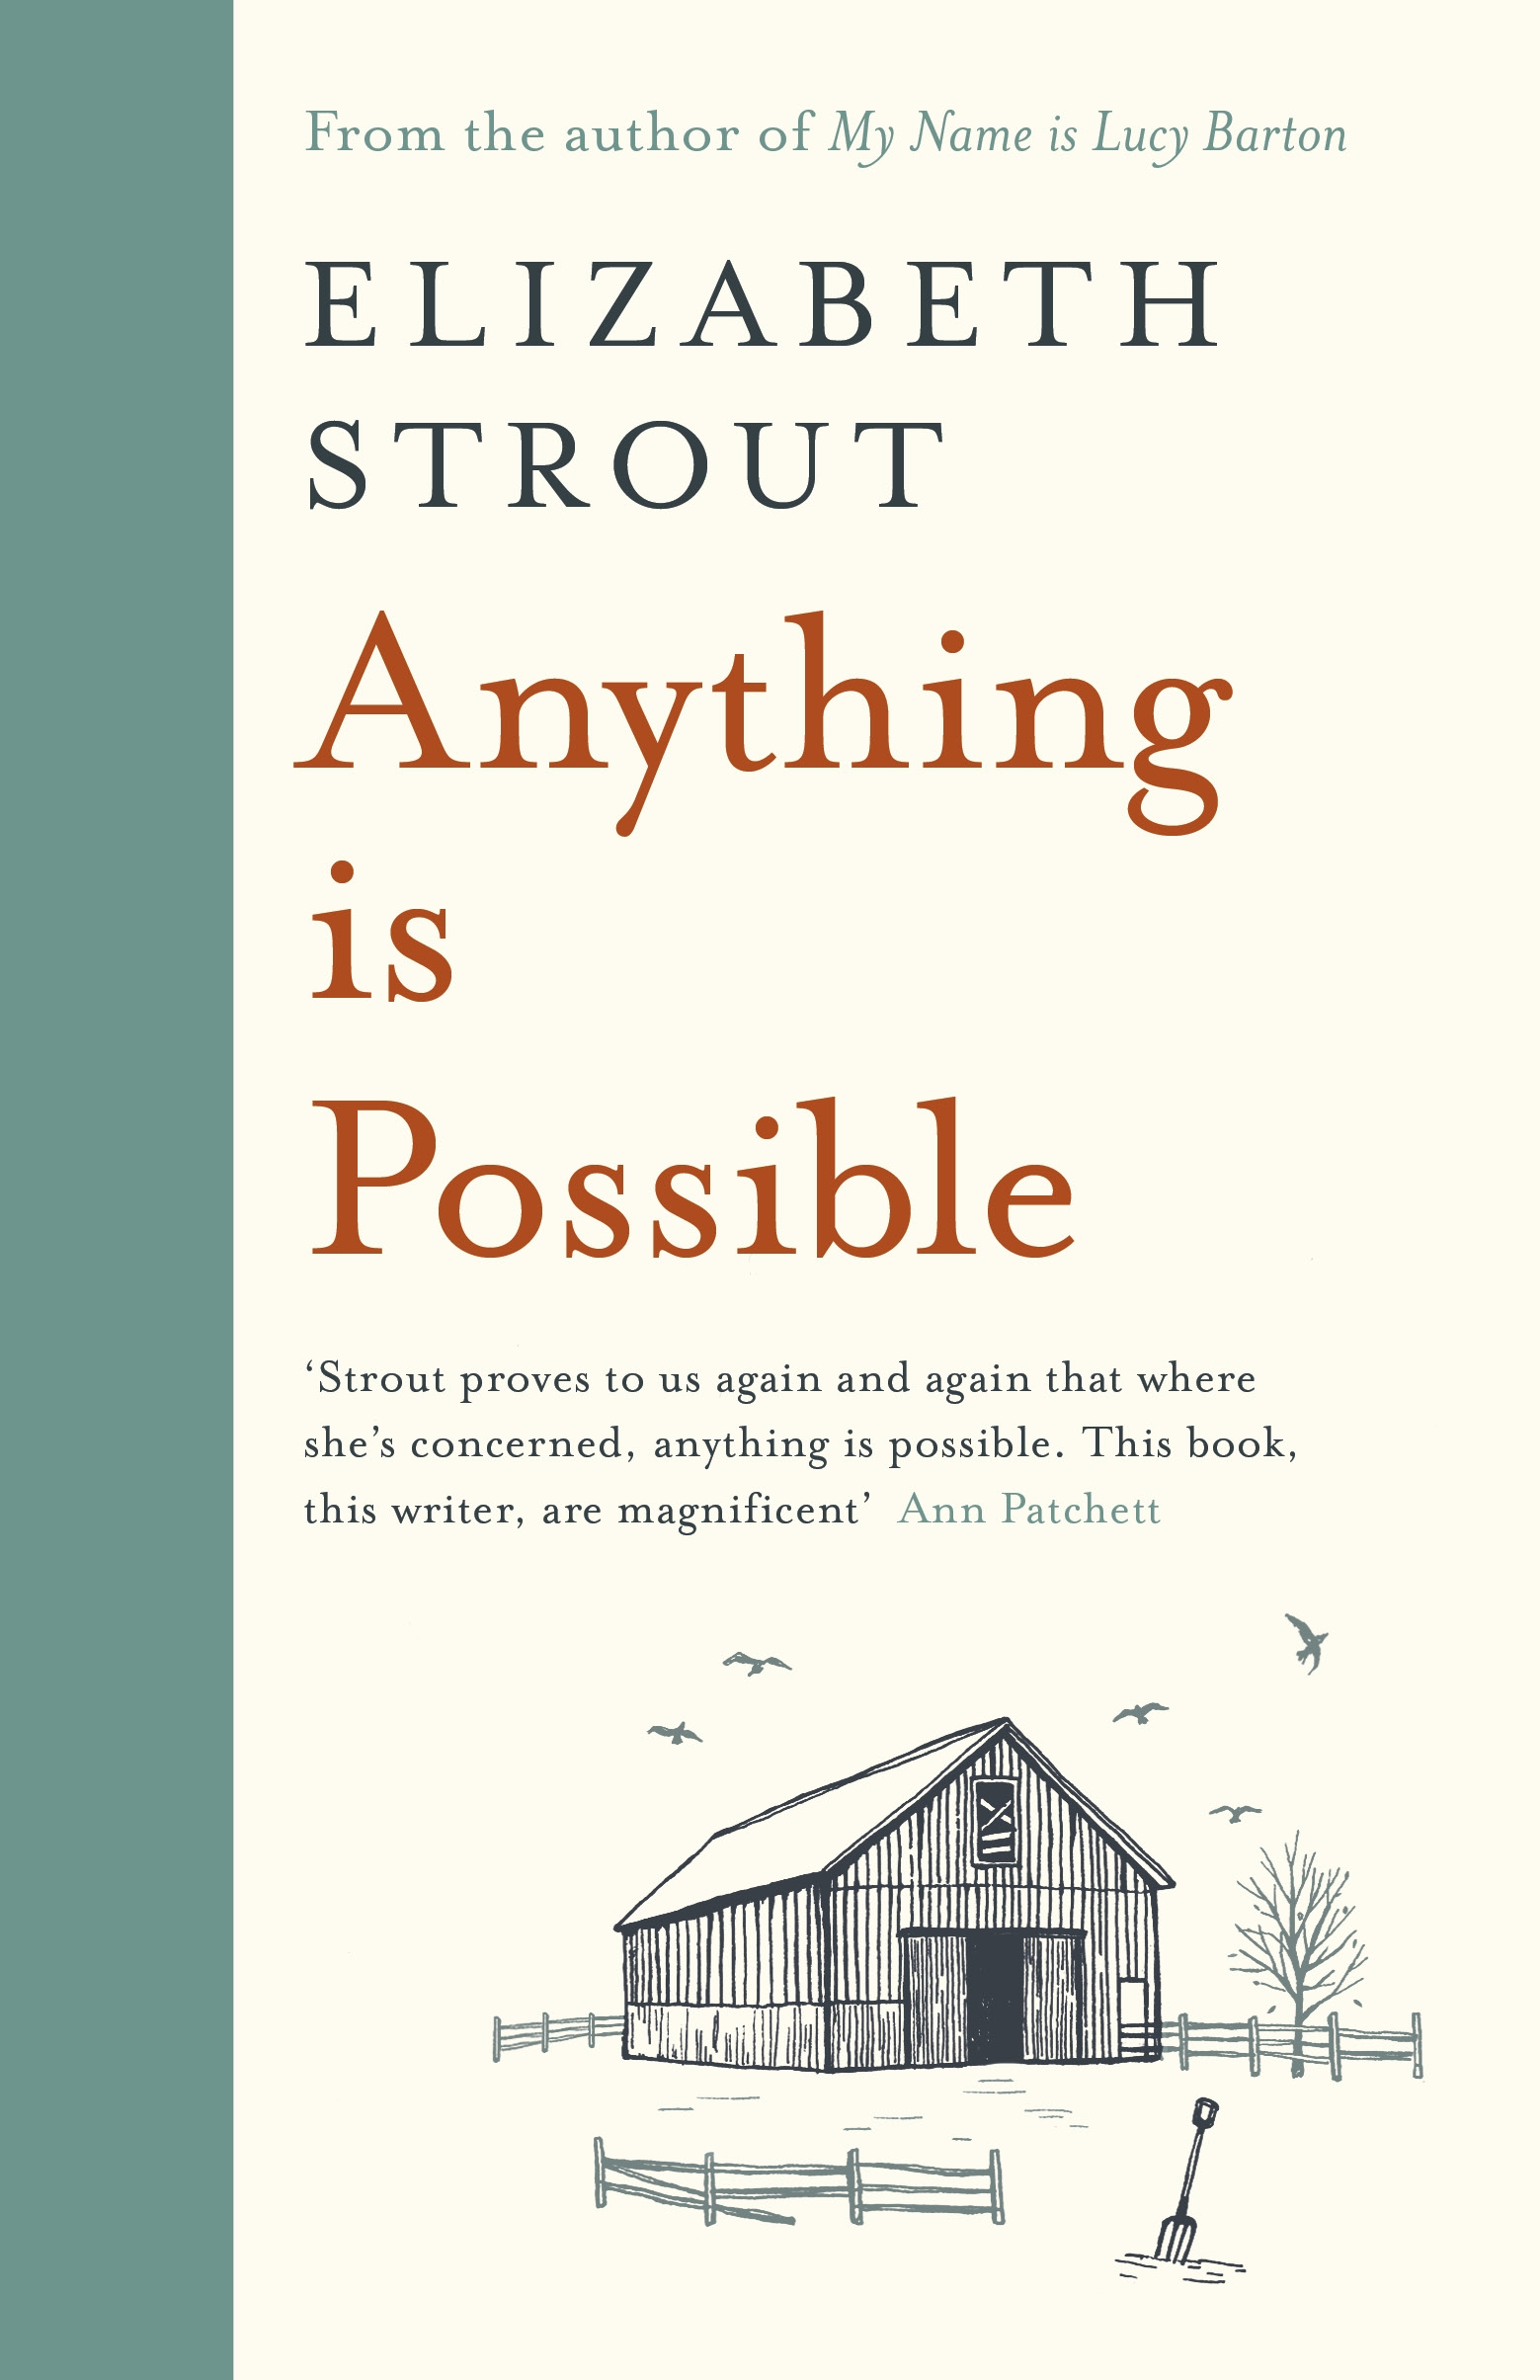 Anything is Possible Elizabeth Strout.jpg